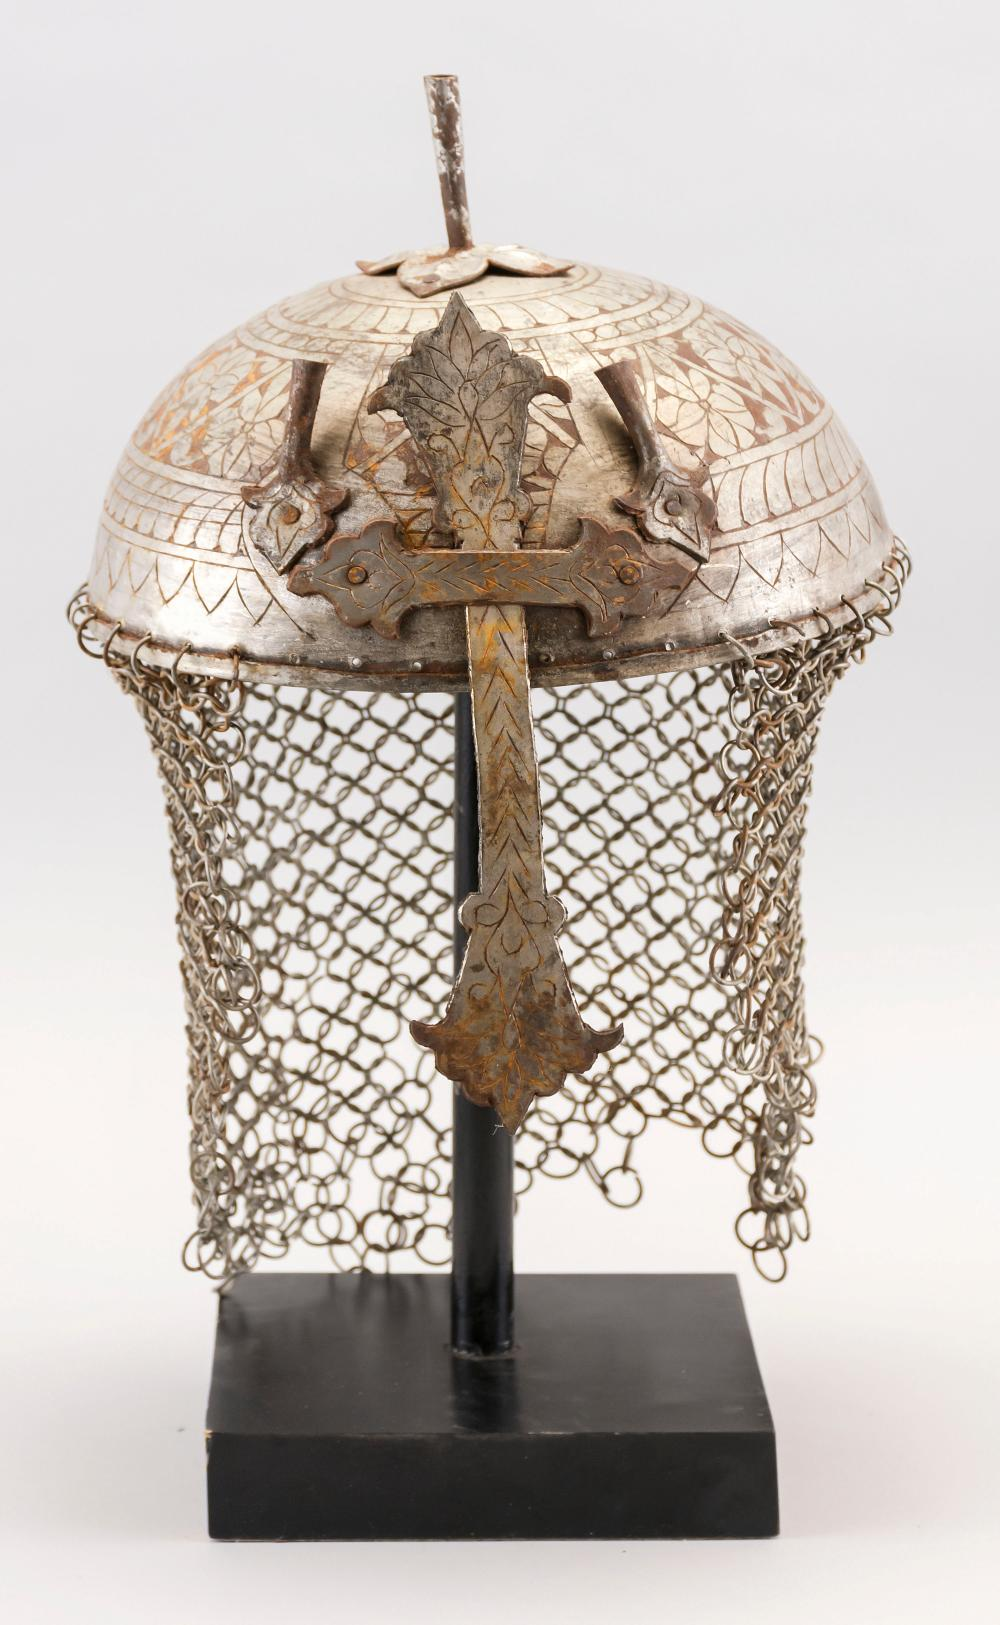 GRAND TOUR MIDDLE EASTERN STEEL HELMET Etched with floral decoration. Height 7